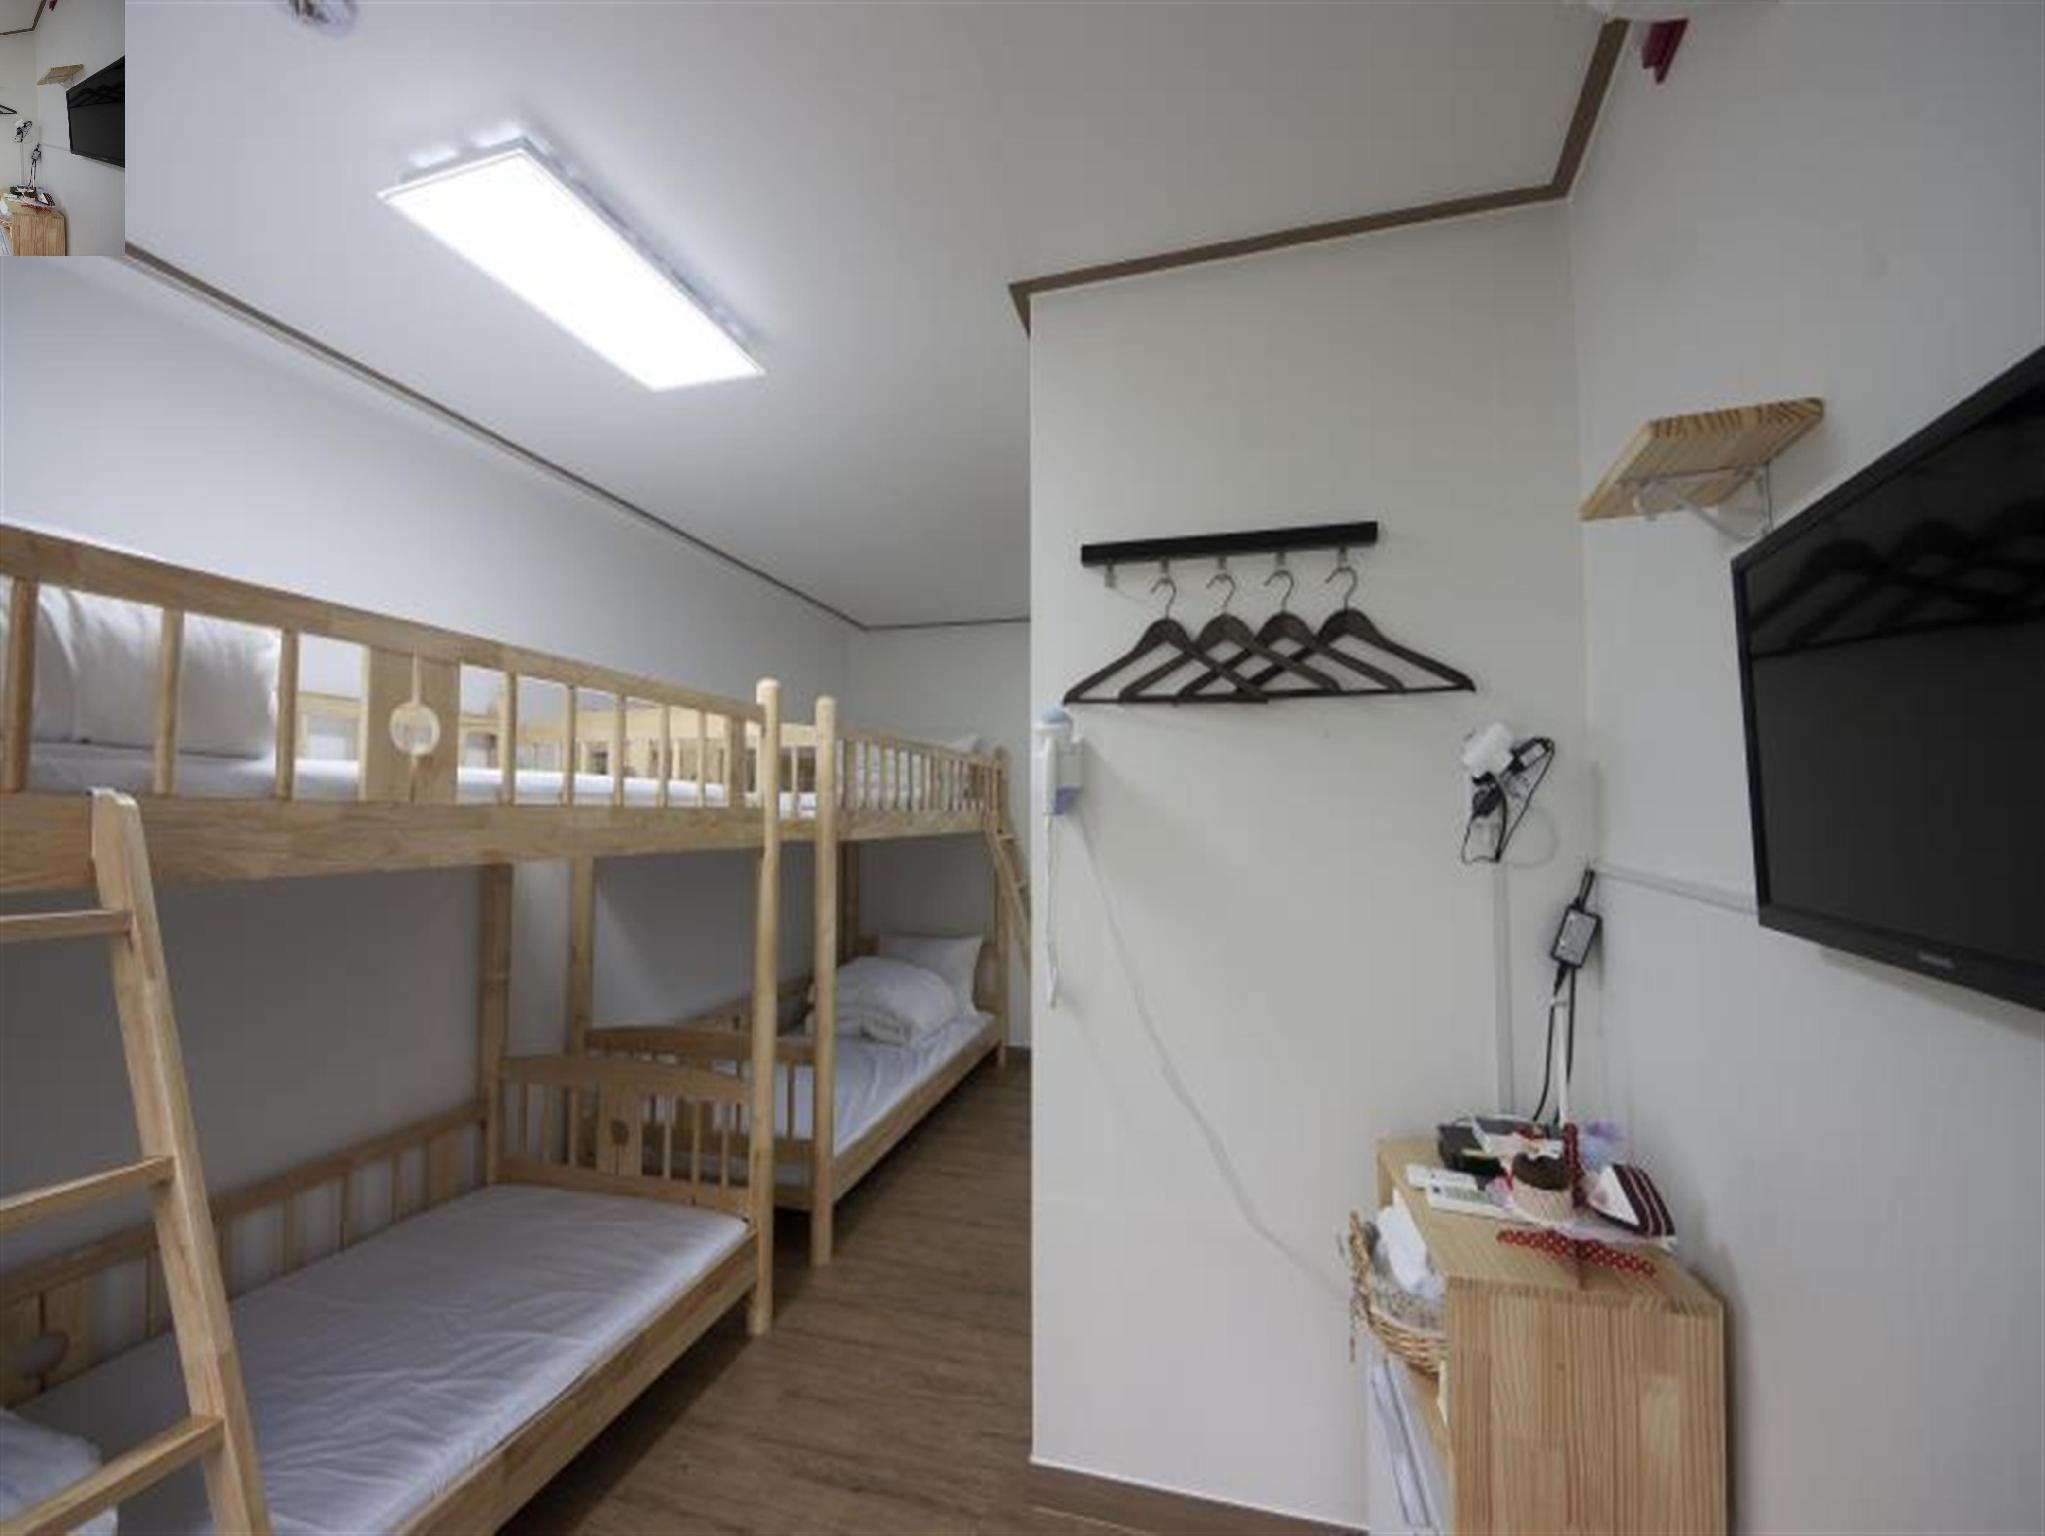 4床女性宿舍中的1张床位 (1 Bed in 4 Bed Female Dormitory Room)